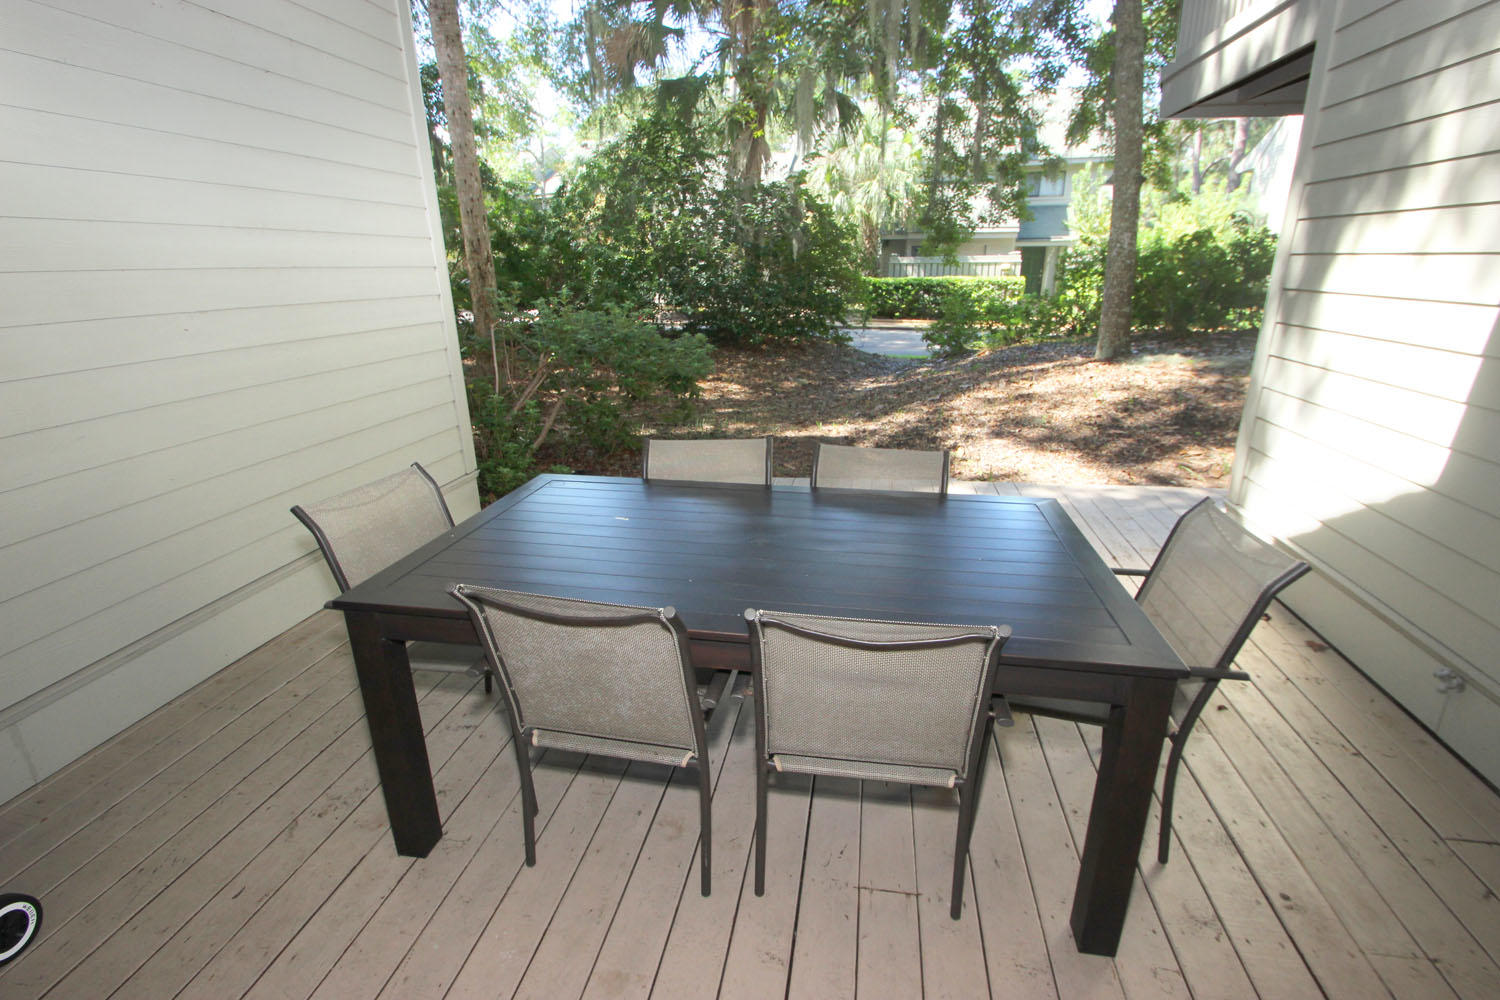 Back deck with table